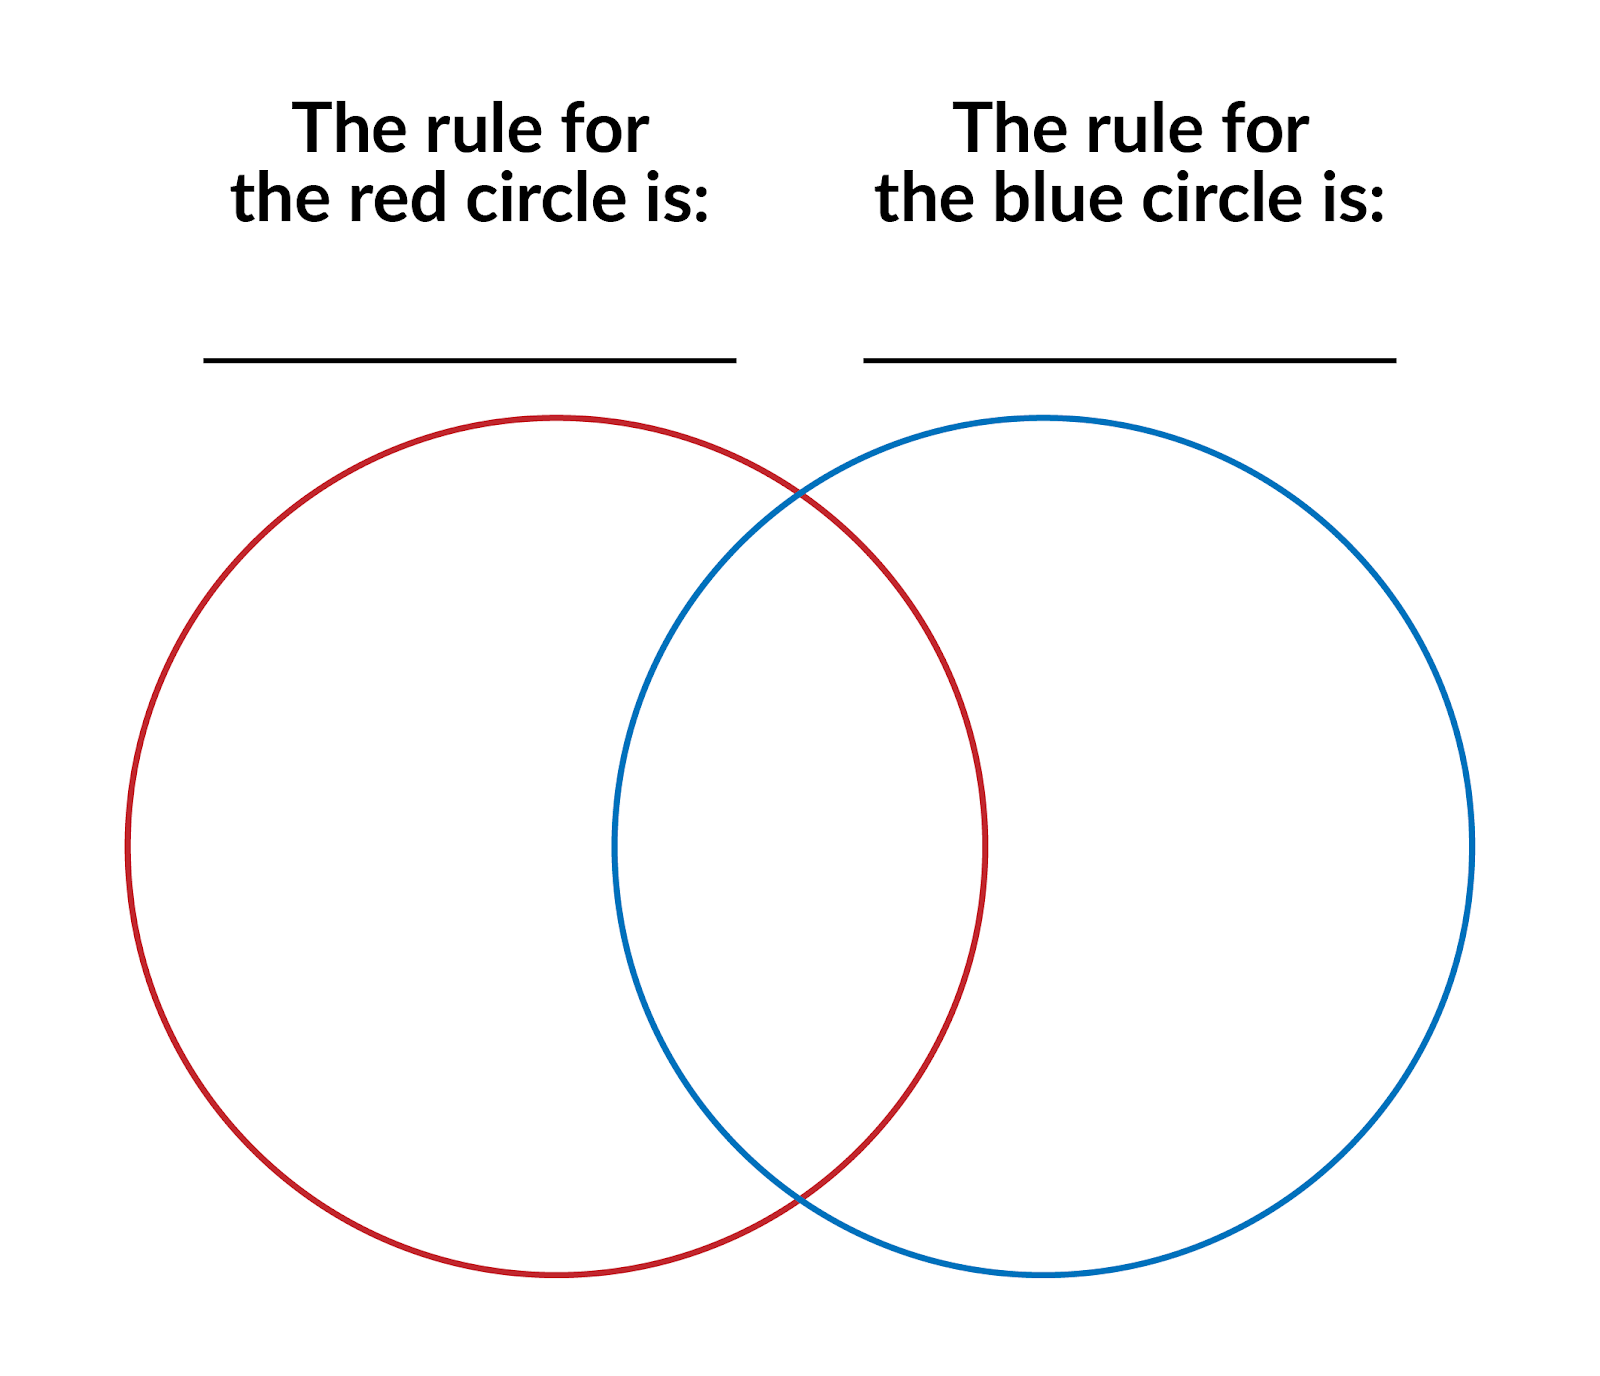 A red circle and a blue circle overlap. Each circle has a heading. The rule for the red circle is ... The rule for the blue circle is ...